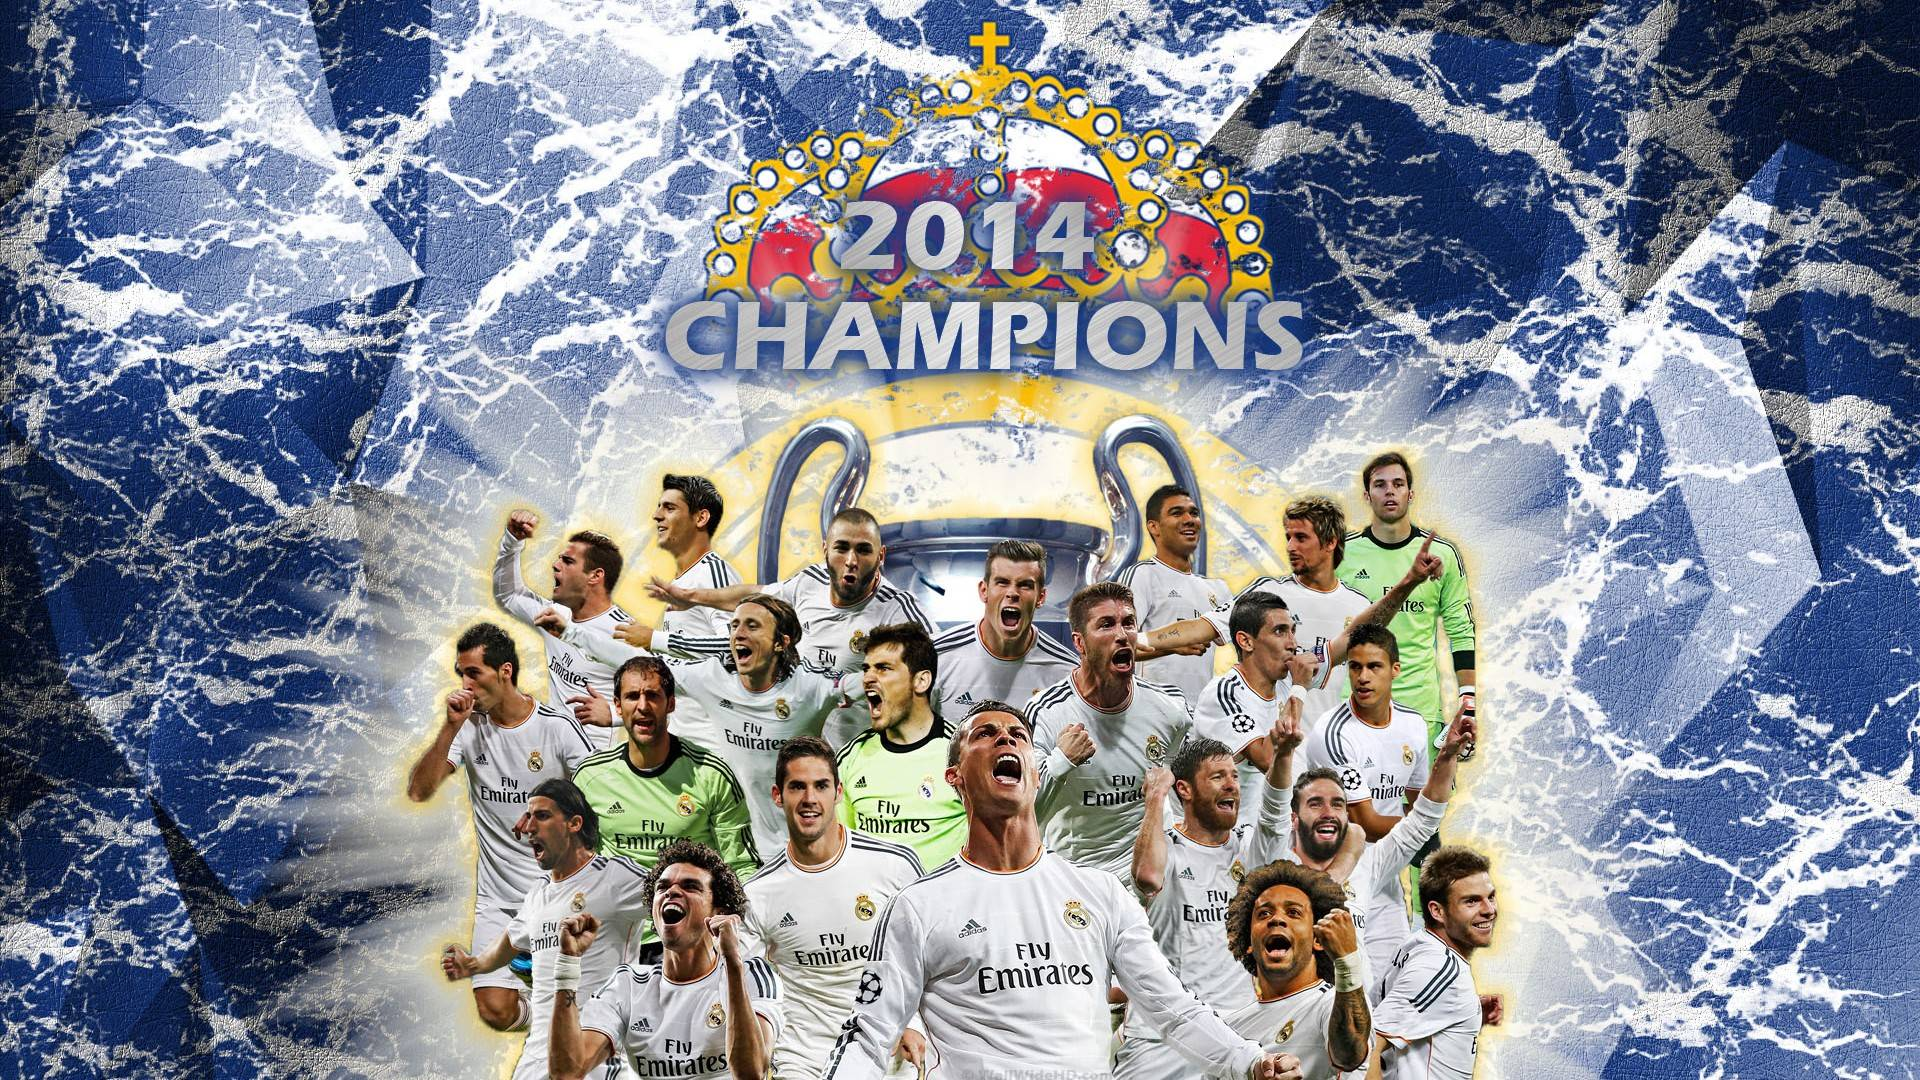 Real madrid 2015 wallpapers 3d wallpaper cave 2014 uefa champions league final winners real madrid cf wallpaper voltagebd Gallery